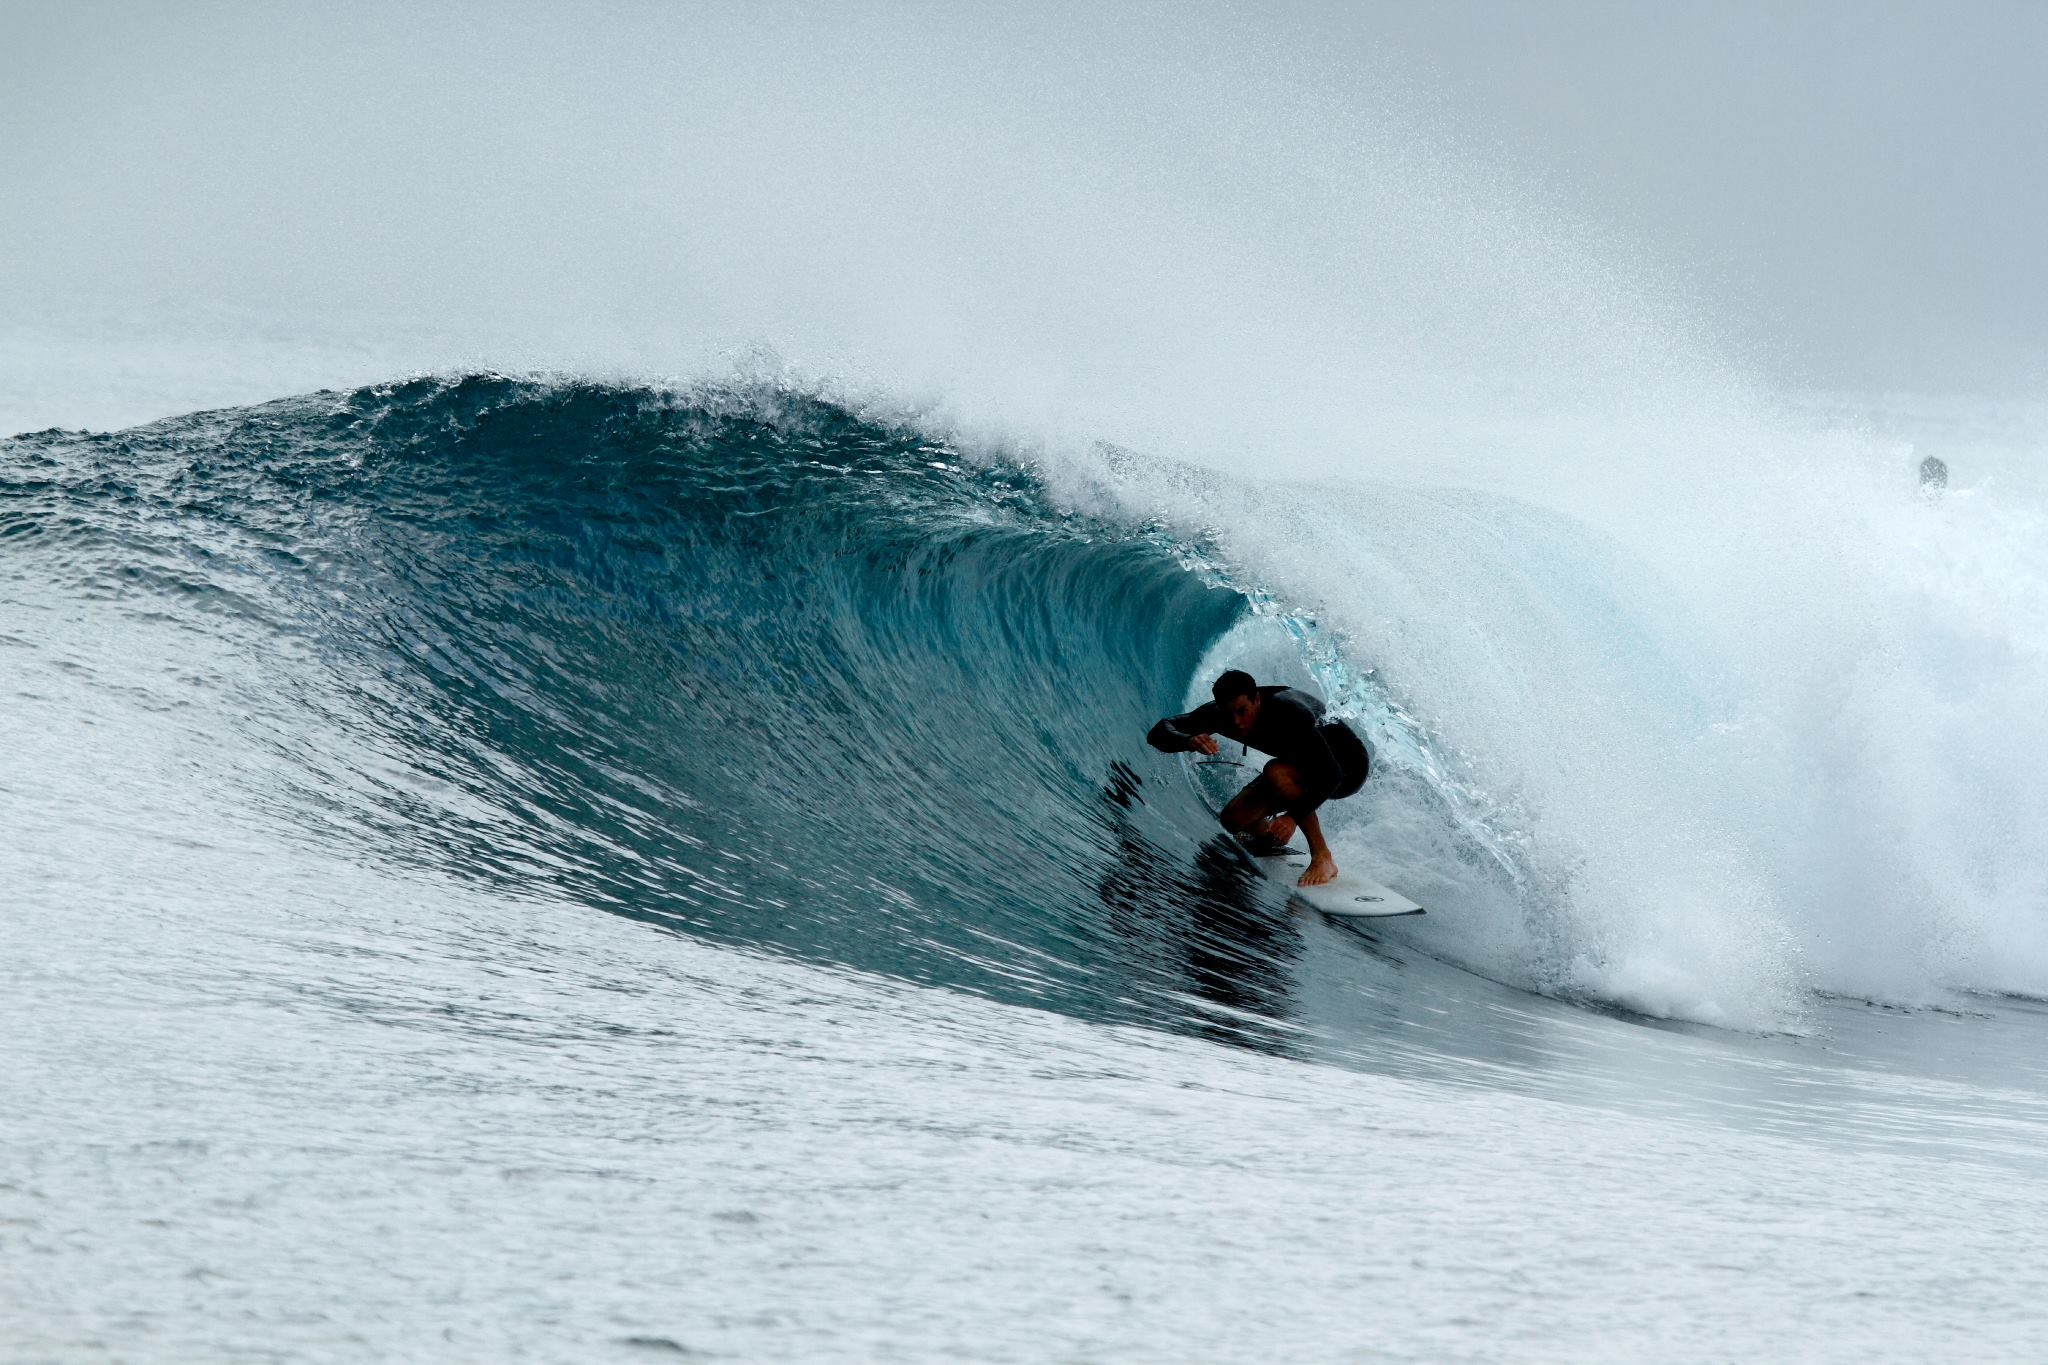 Get barreled in front of your door